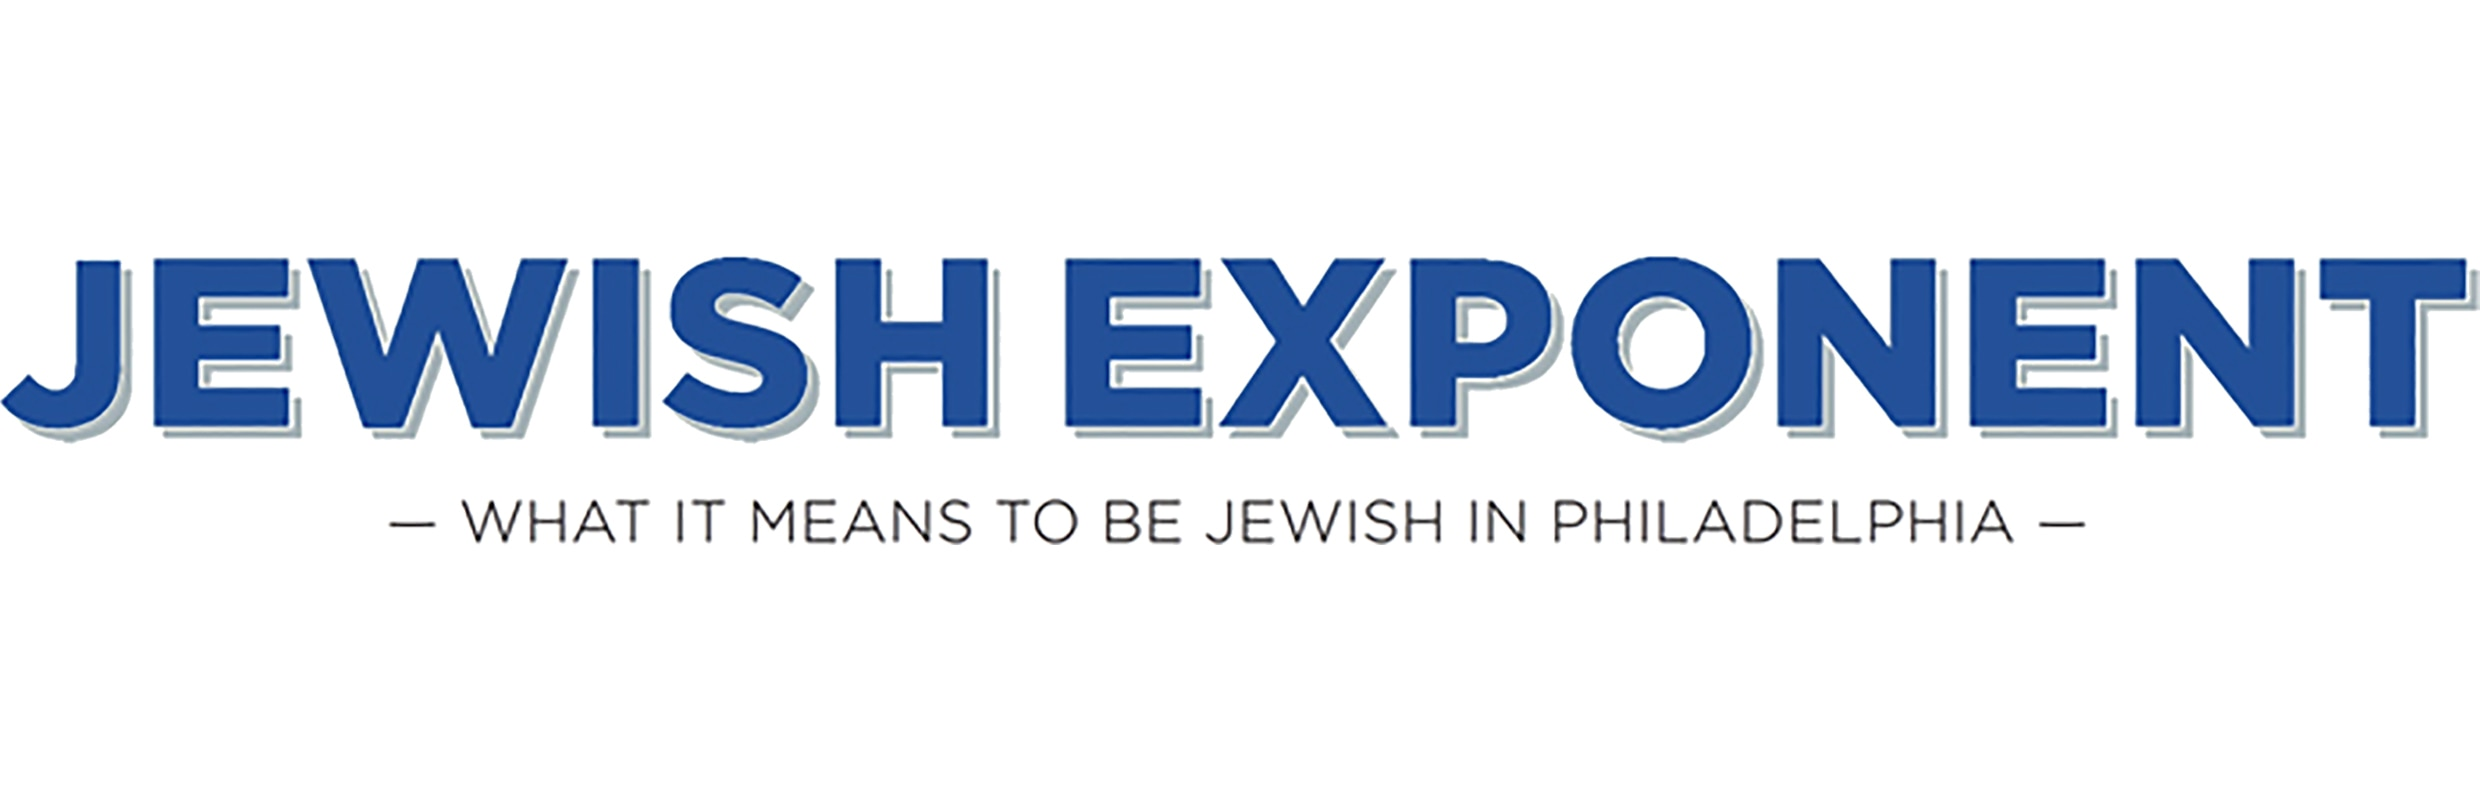 Jewish exponent selected